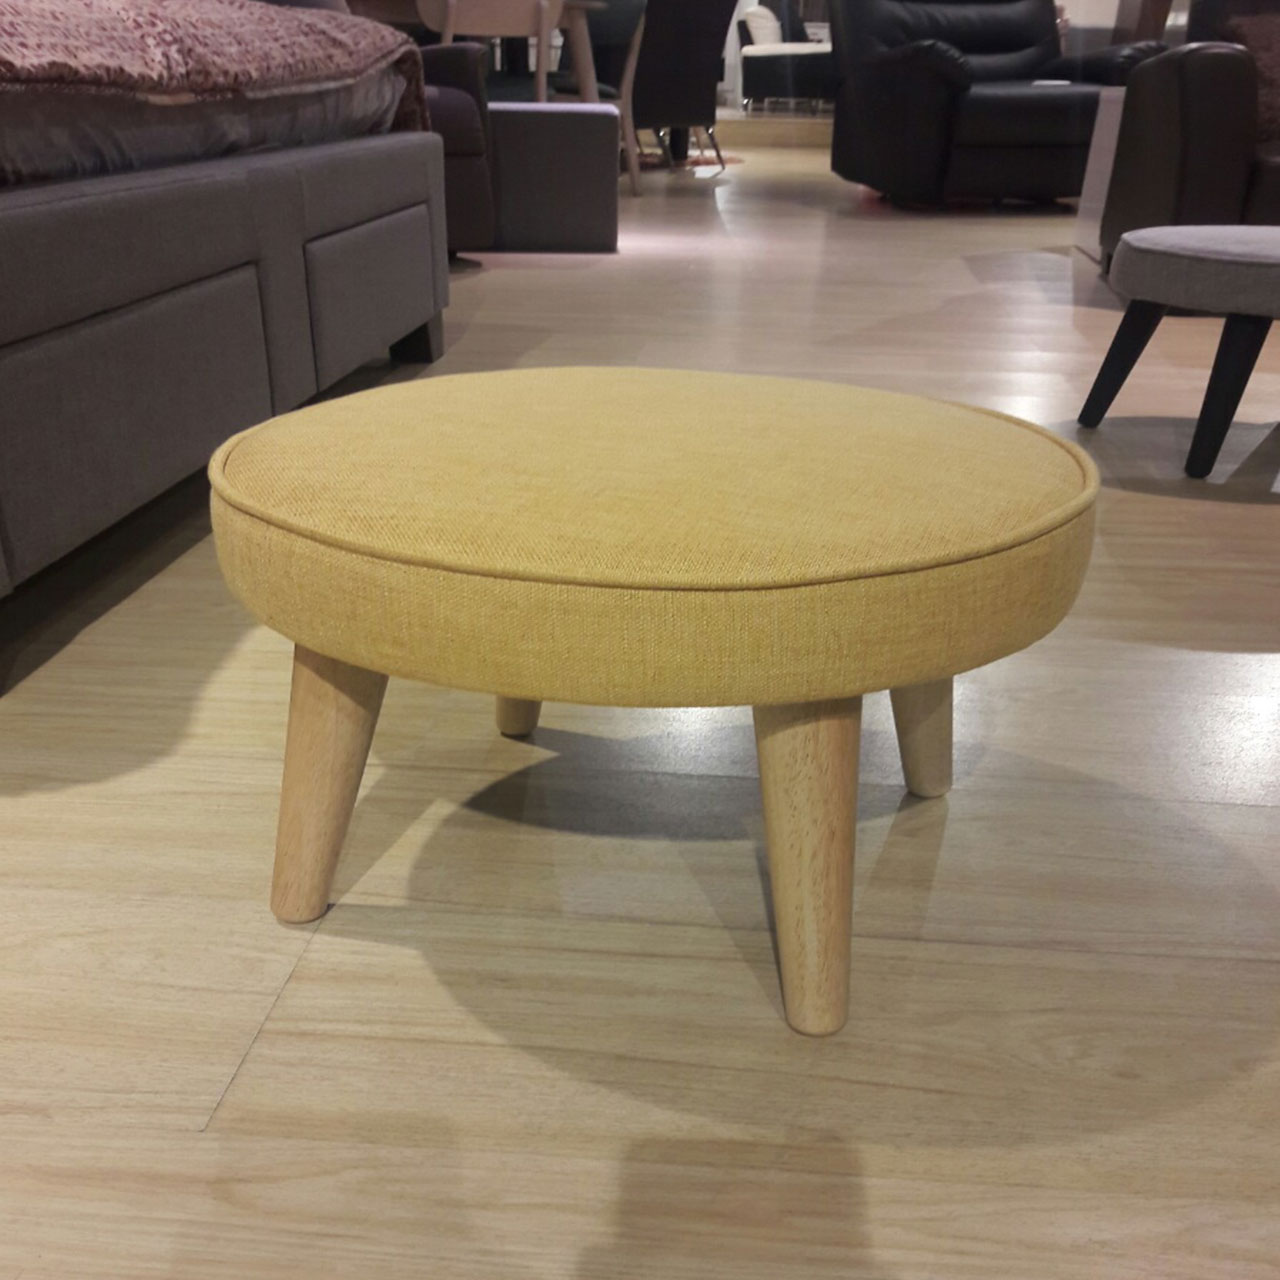 stool chair ph brown wooden folding chairs ophelia furniture store manila philippines urban